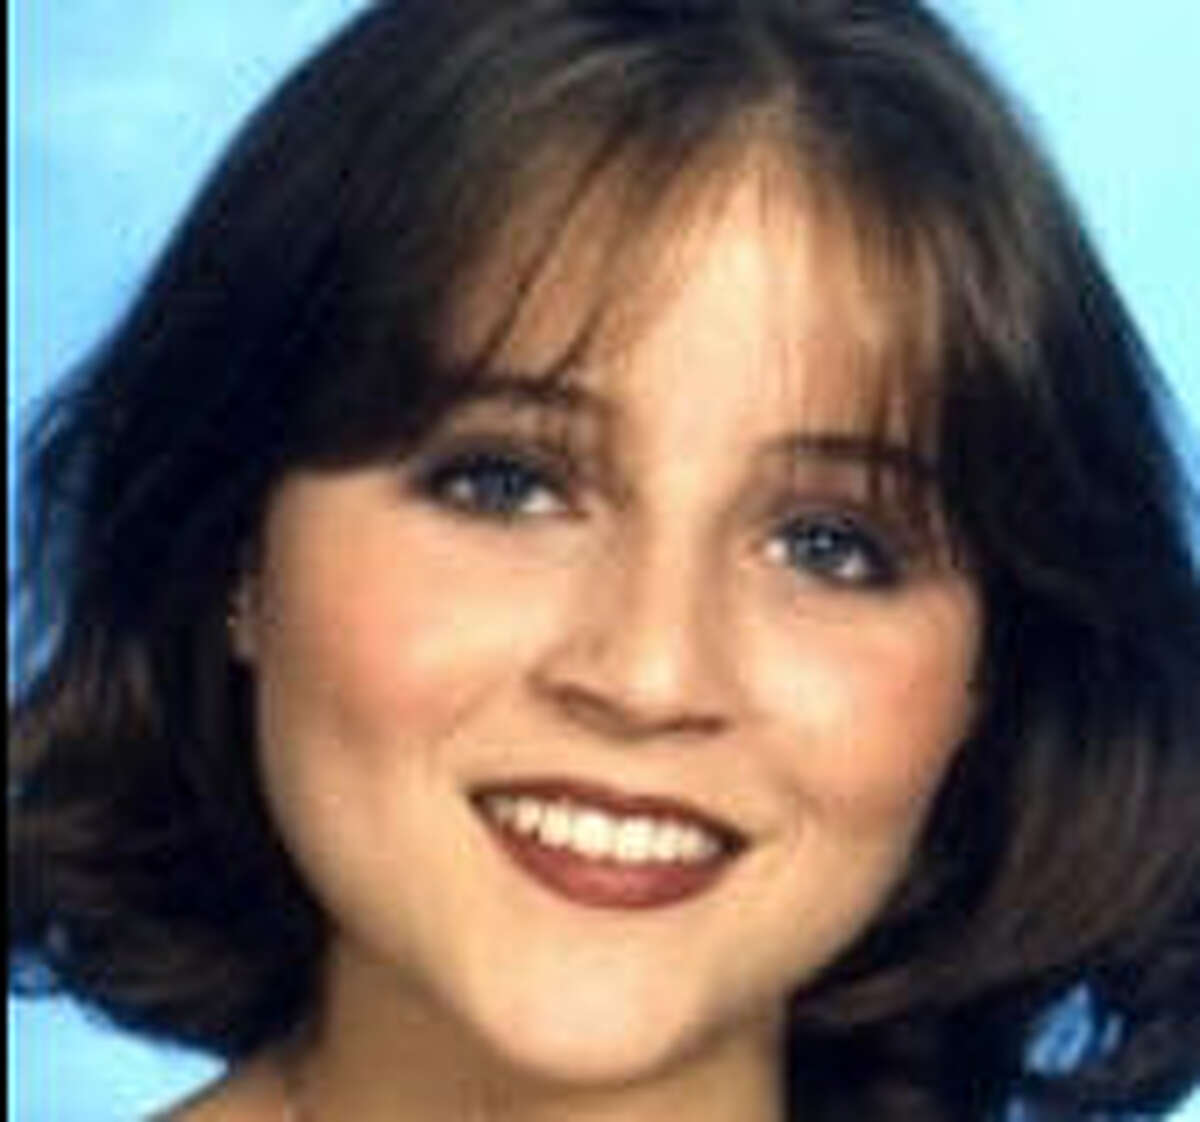 Jessica Cain - Cain disappeared on August 17, 1997 after attending a party at the Bennigan's on Bay Area Boulevard at Interstate 45 in Clear Lake. Her truck was found parked next to the freeway near the La Marque exit, with valuables still inside.